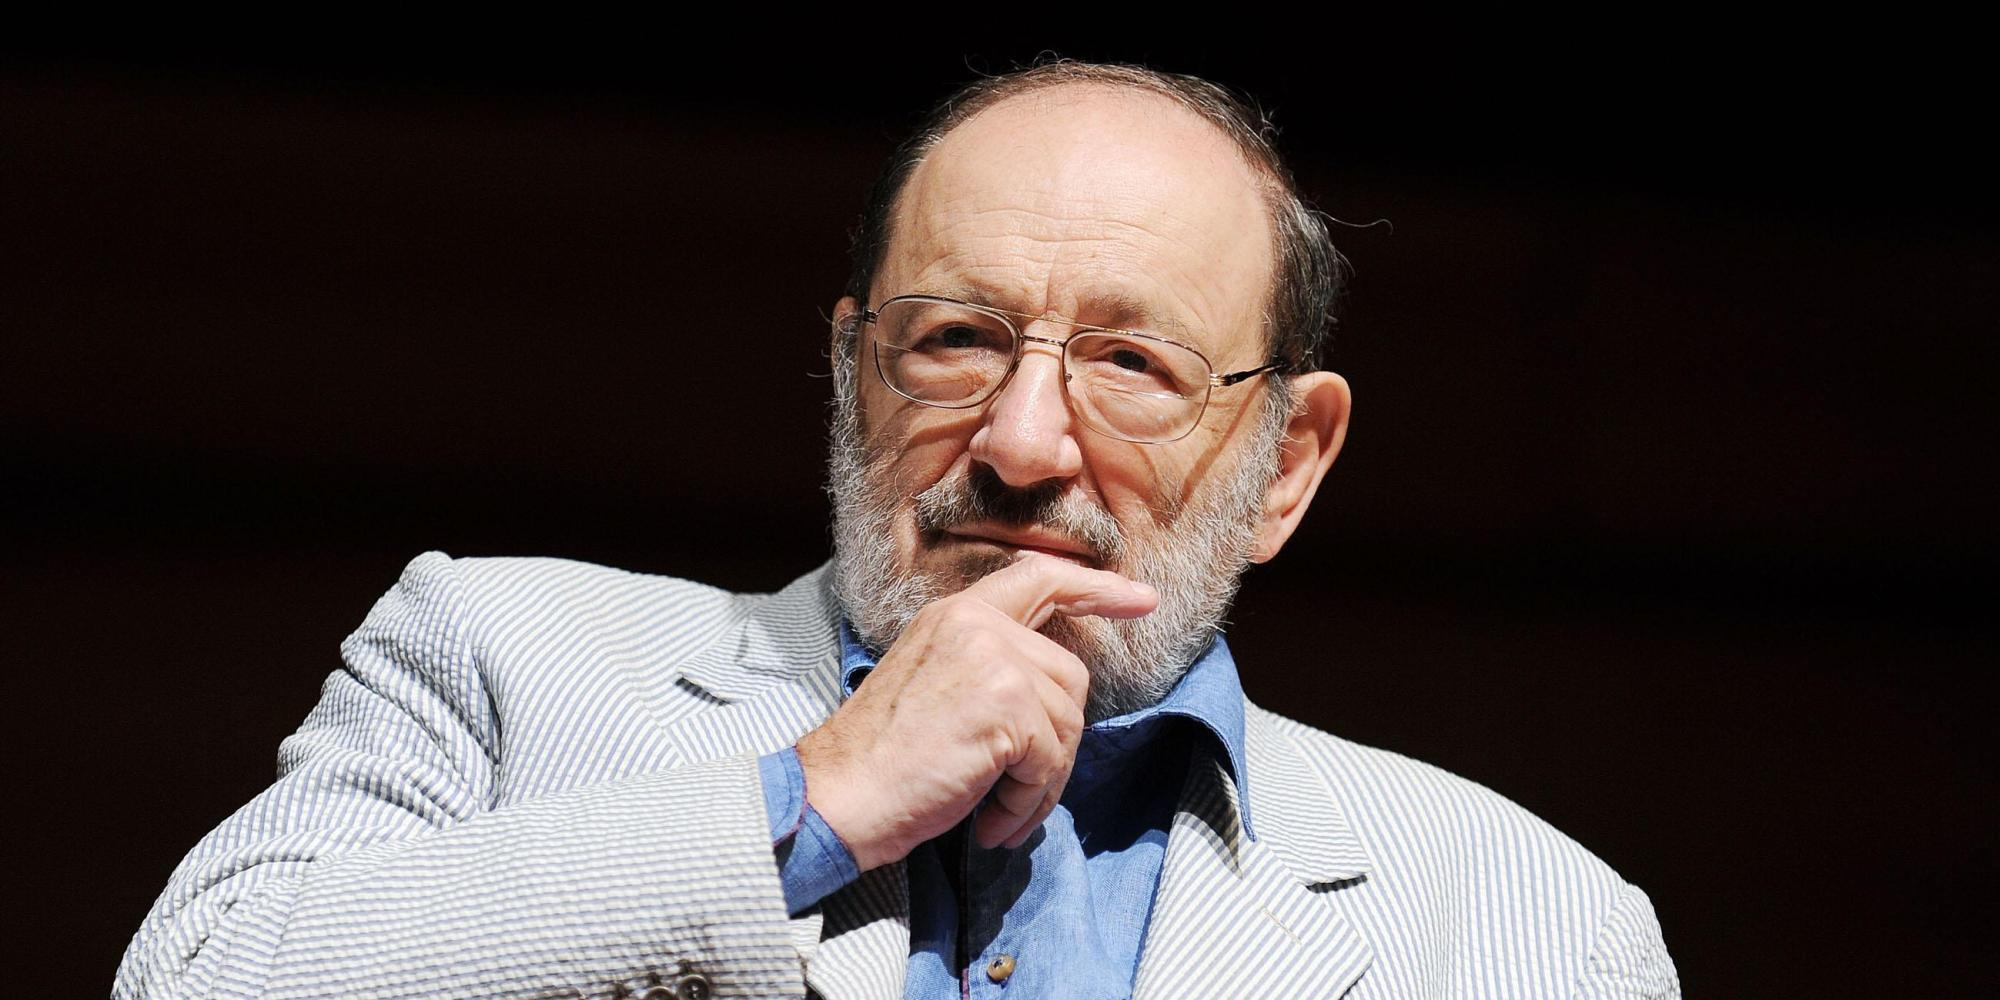 Cultura in lutto per la morte di Umberto Eco